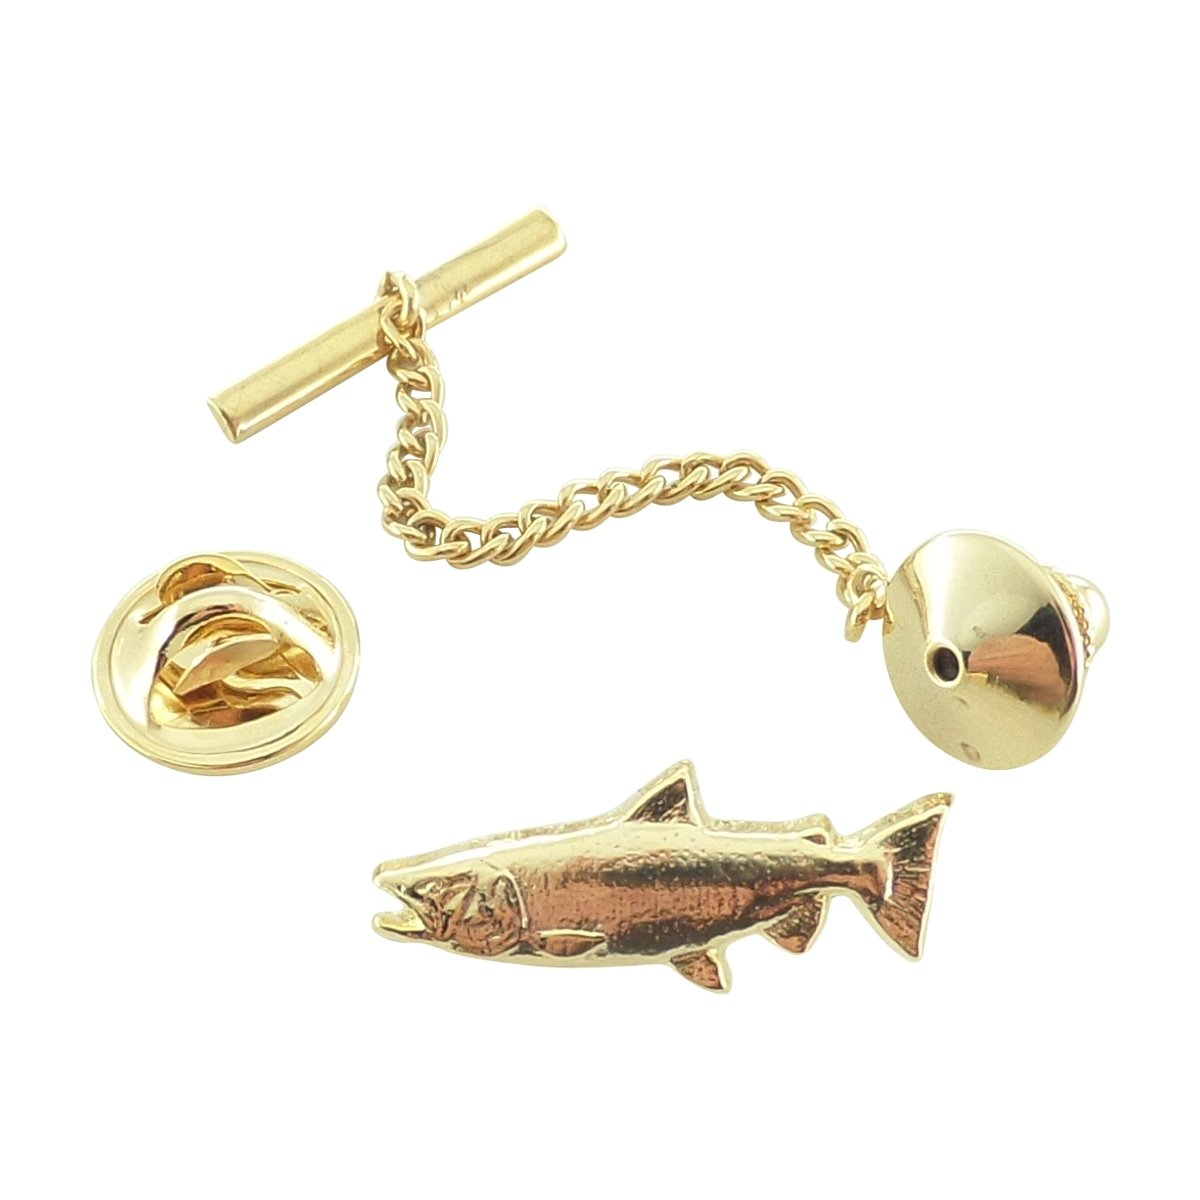 Creative Pewter Designs, Pewter King Salmon Tie Tack, Gold Plated, FG040TT